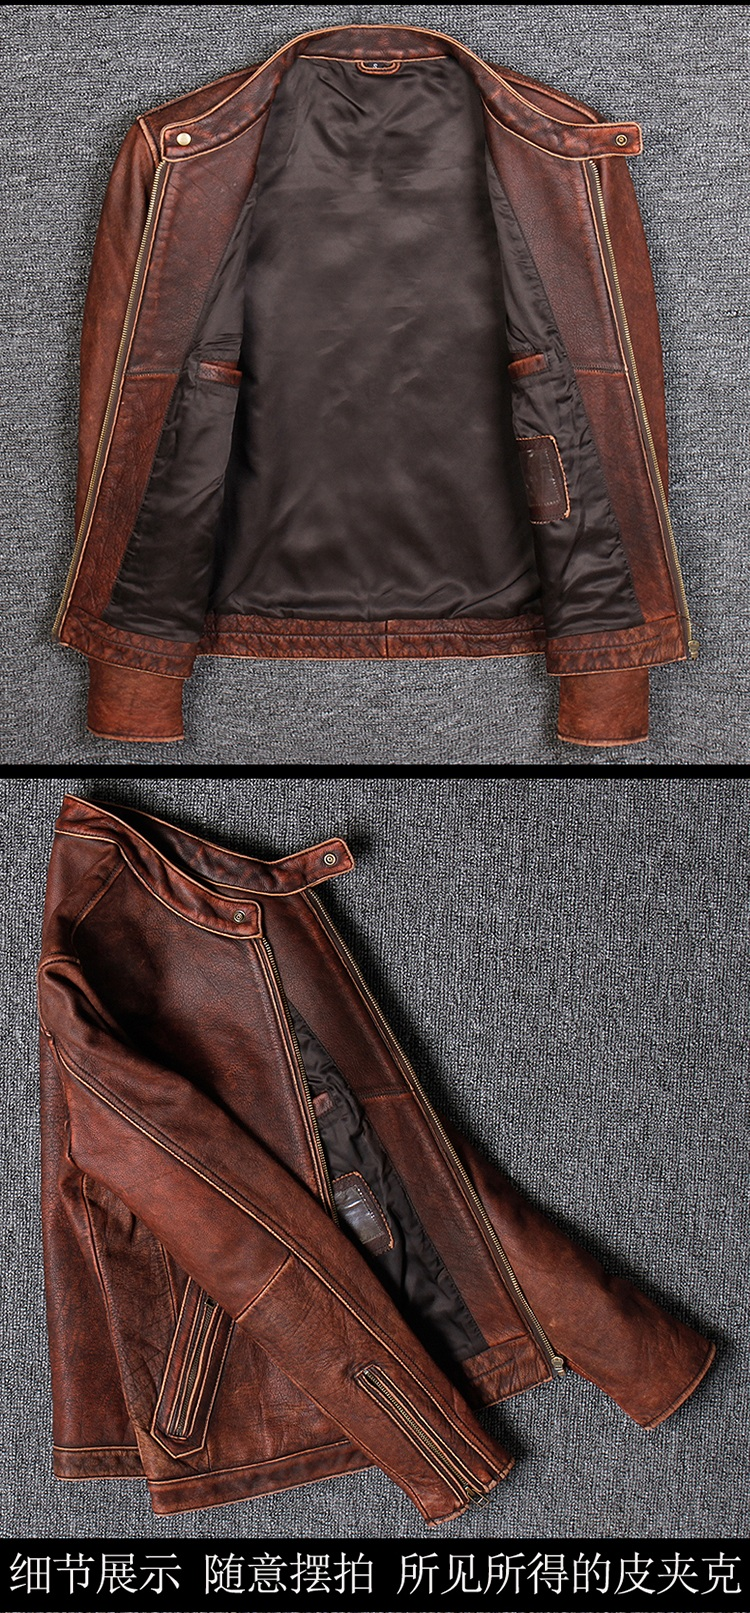 HTB1cdYpUhjaK1RjSZFAq6zdLFXar Free shipping.Plus size Brand Classic style cowhide jacket,mens 100% genuine leather jackets,biker vintage quality coat.sales